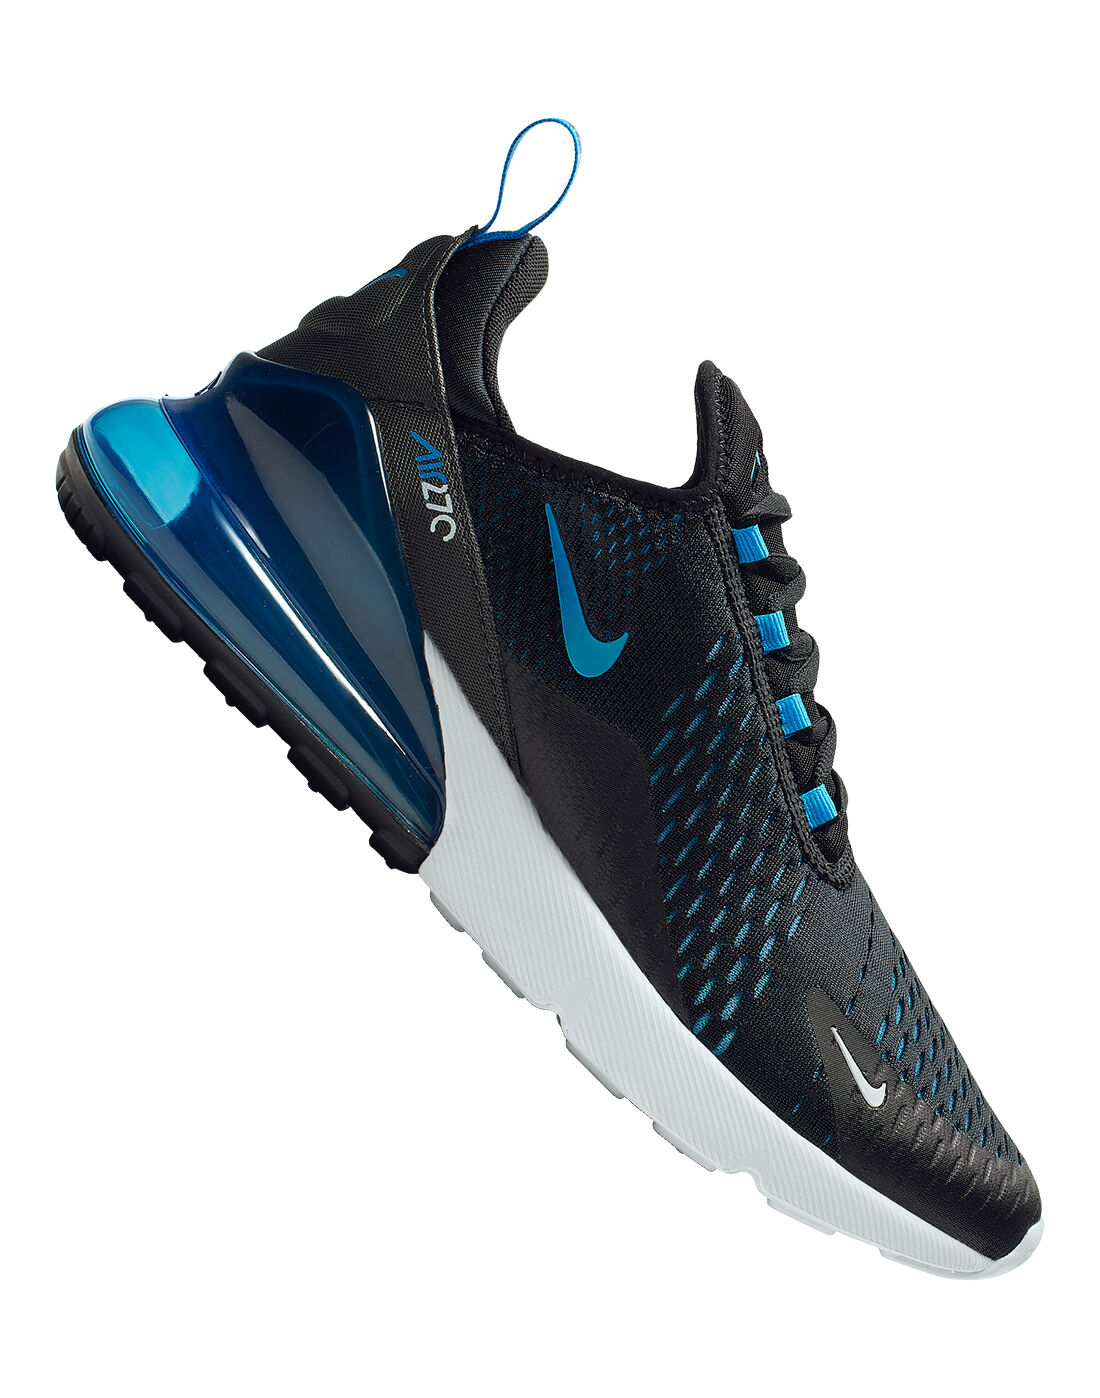 Men's Black & Blue Nike Air Max 270 | Life Style Sports